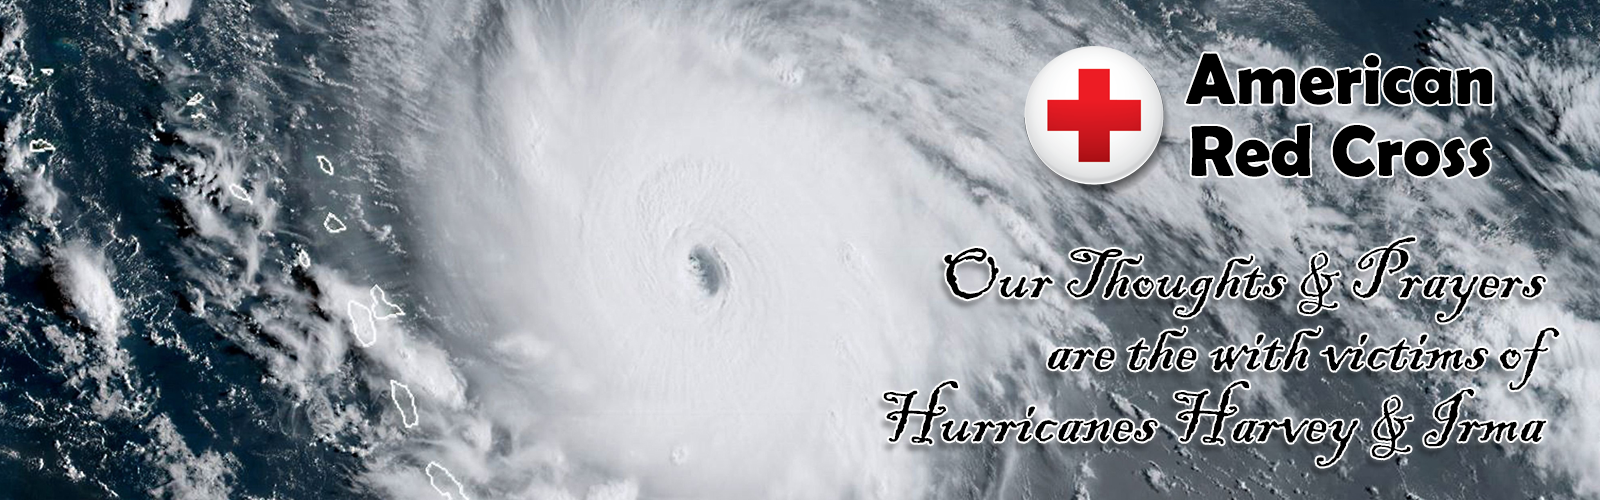 Disaster Relief Fund for Victims of Hurricanes Harvey & Irma